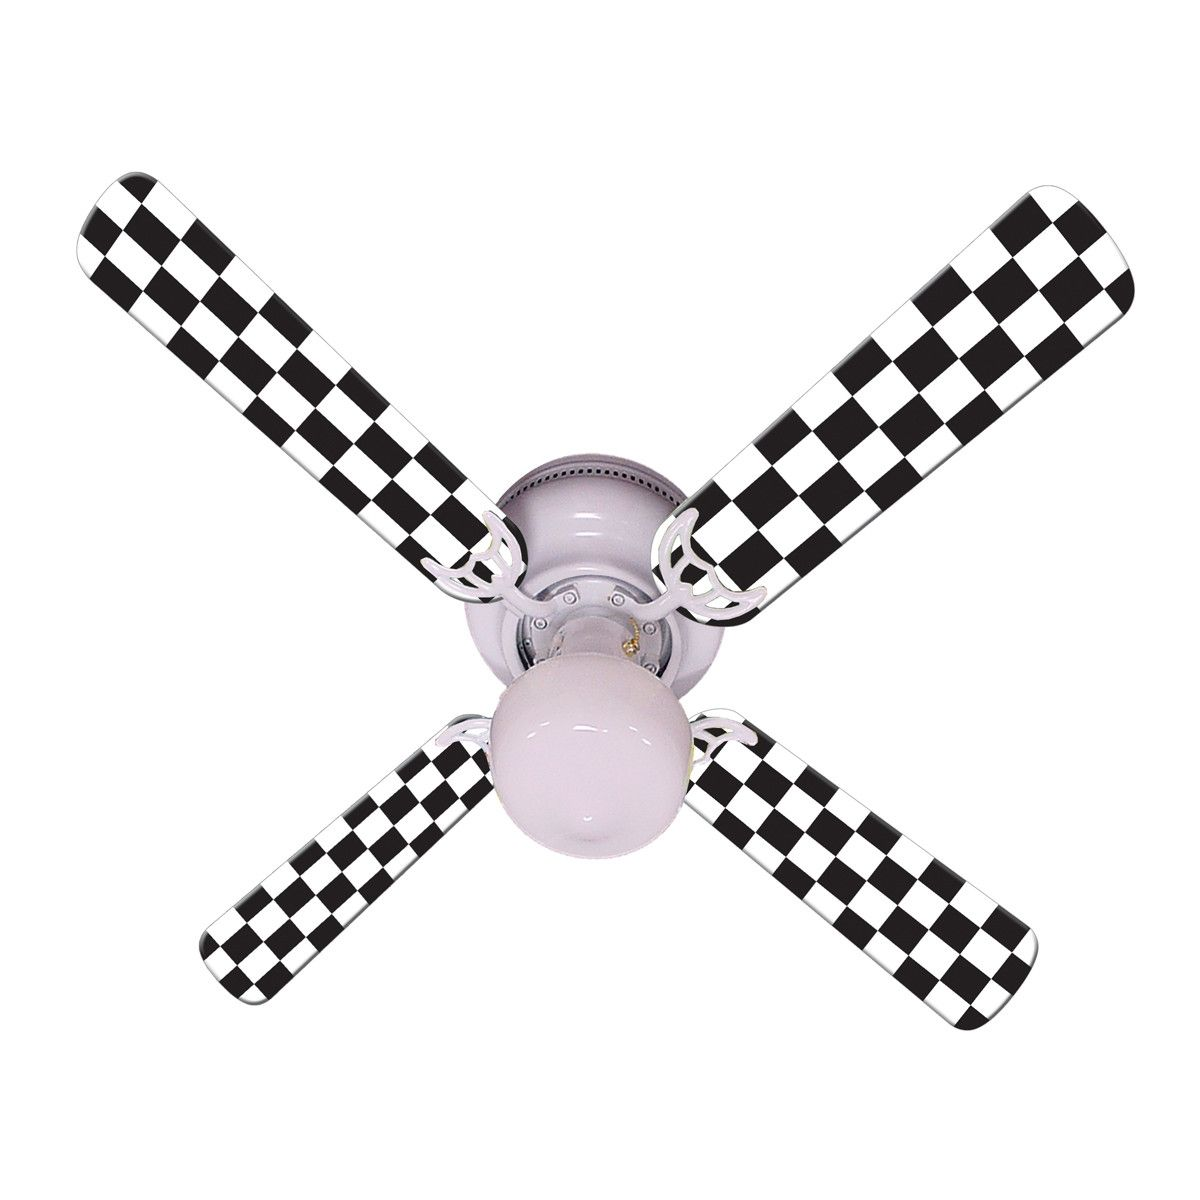 Checkered racing flag fan 42 car themed rooms ceiling fan and checkered racing flag fan 42 aloadofball Image collections